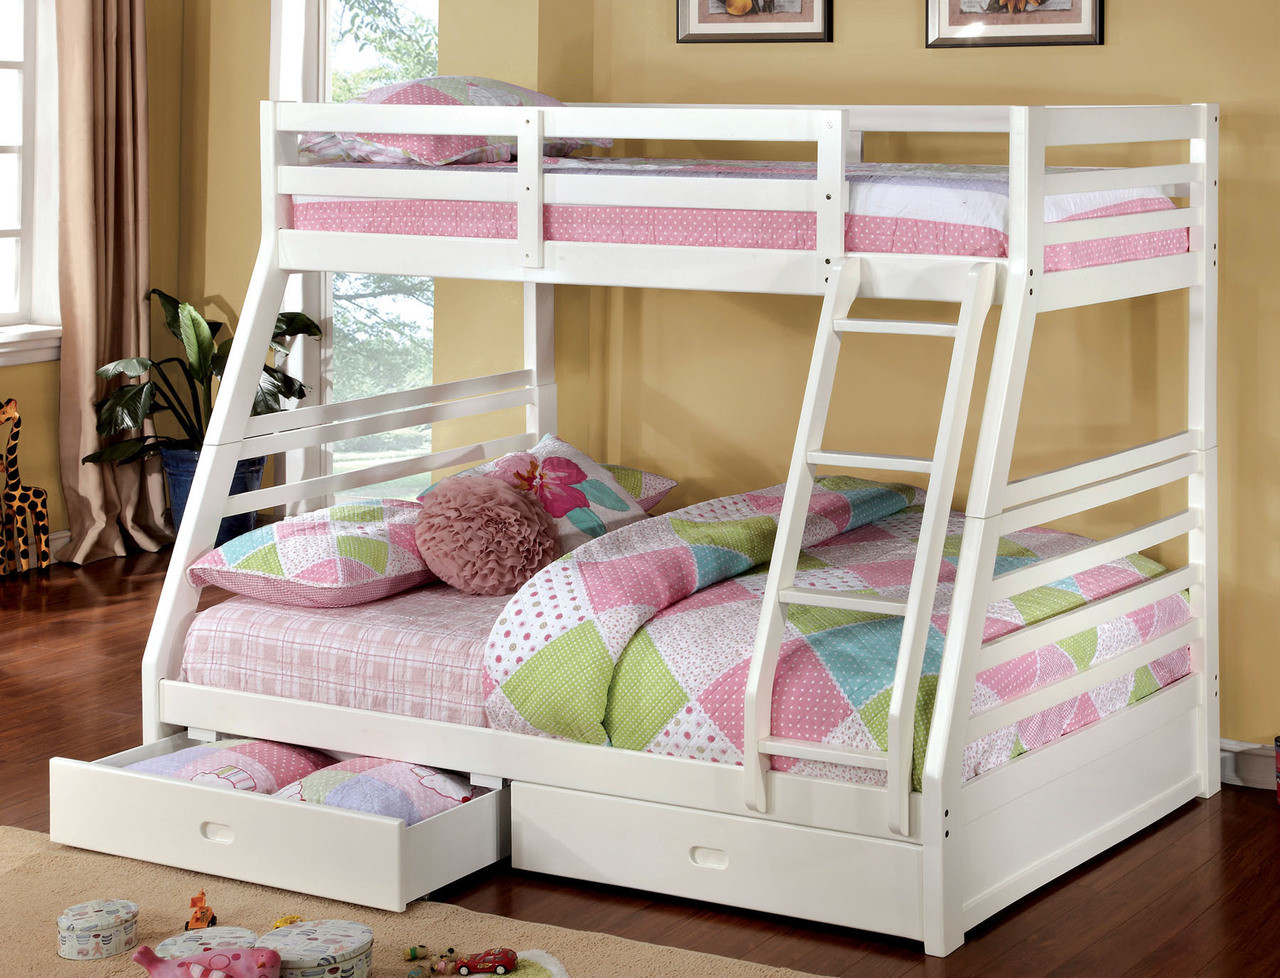 Picture of: Makaio White Wood Twin Over Full Bunk Bed With Drawers For Kids